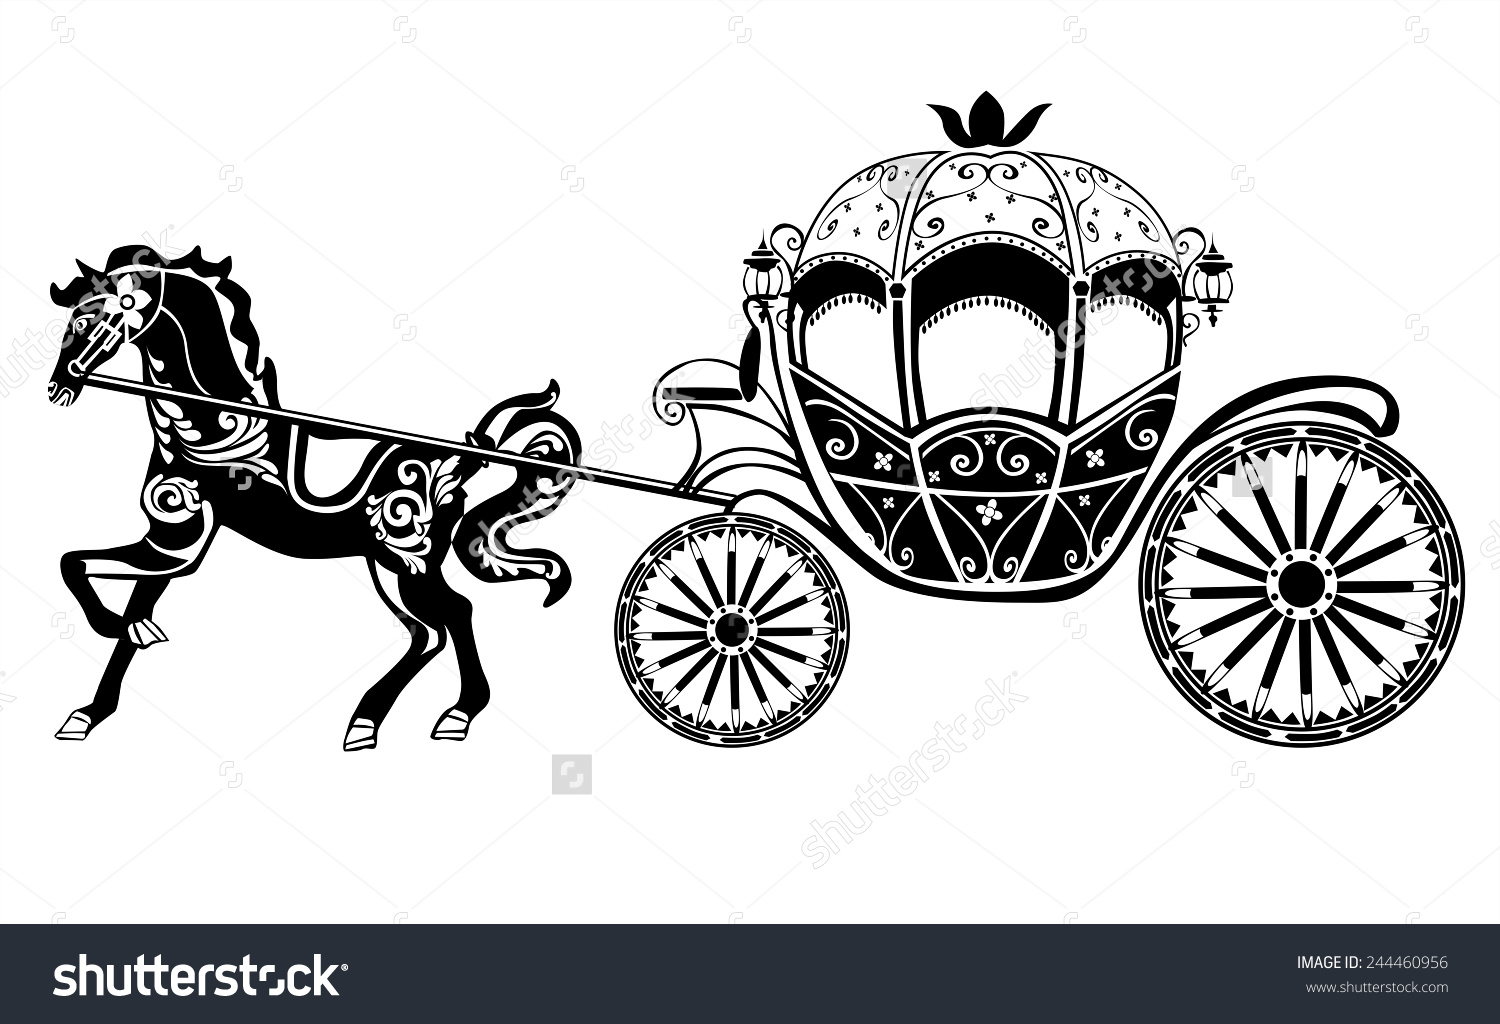 1500x1024 Carriage Clipart Chariot Free Collection Download And Share